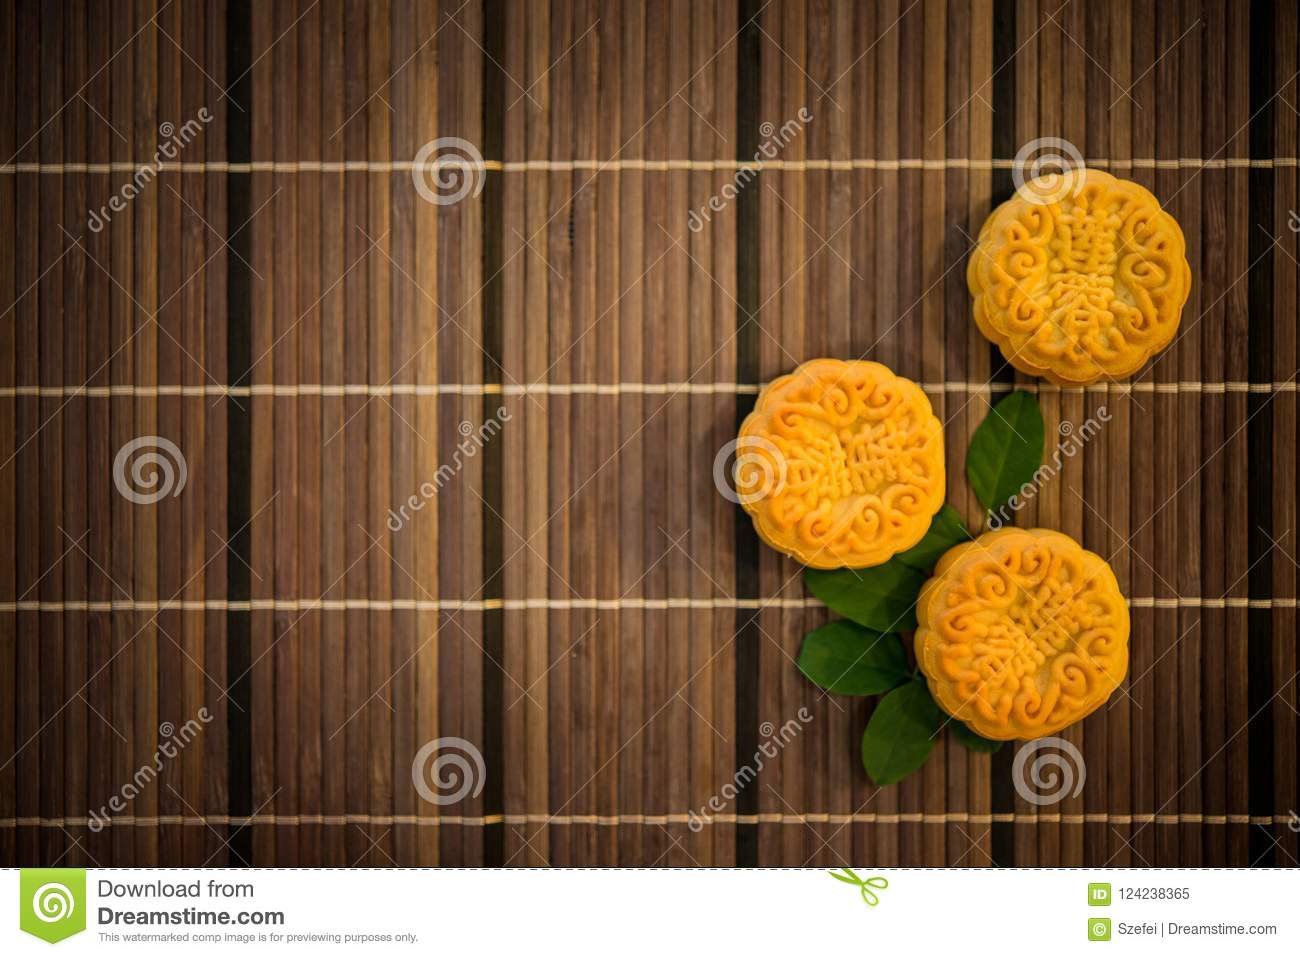 Top Down Moon Cakes On Bamboo Mat With Copy Space Stock Image